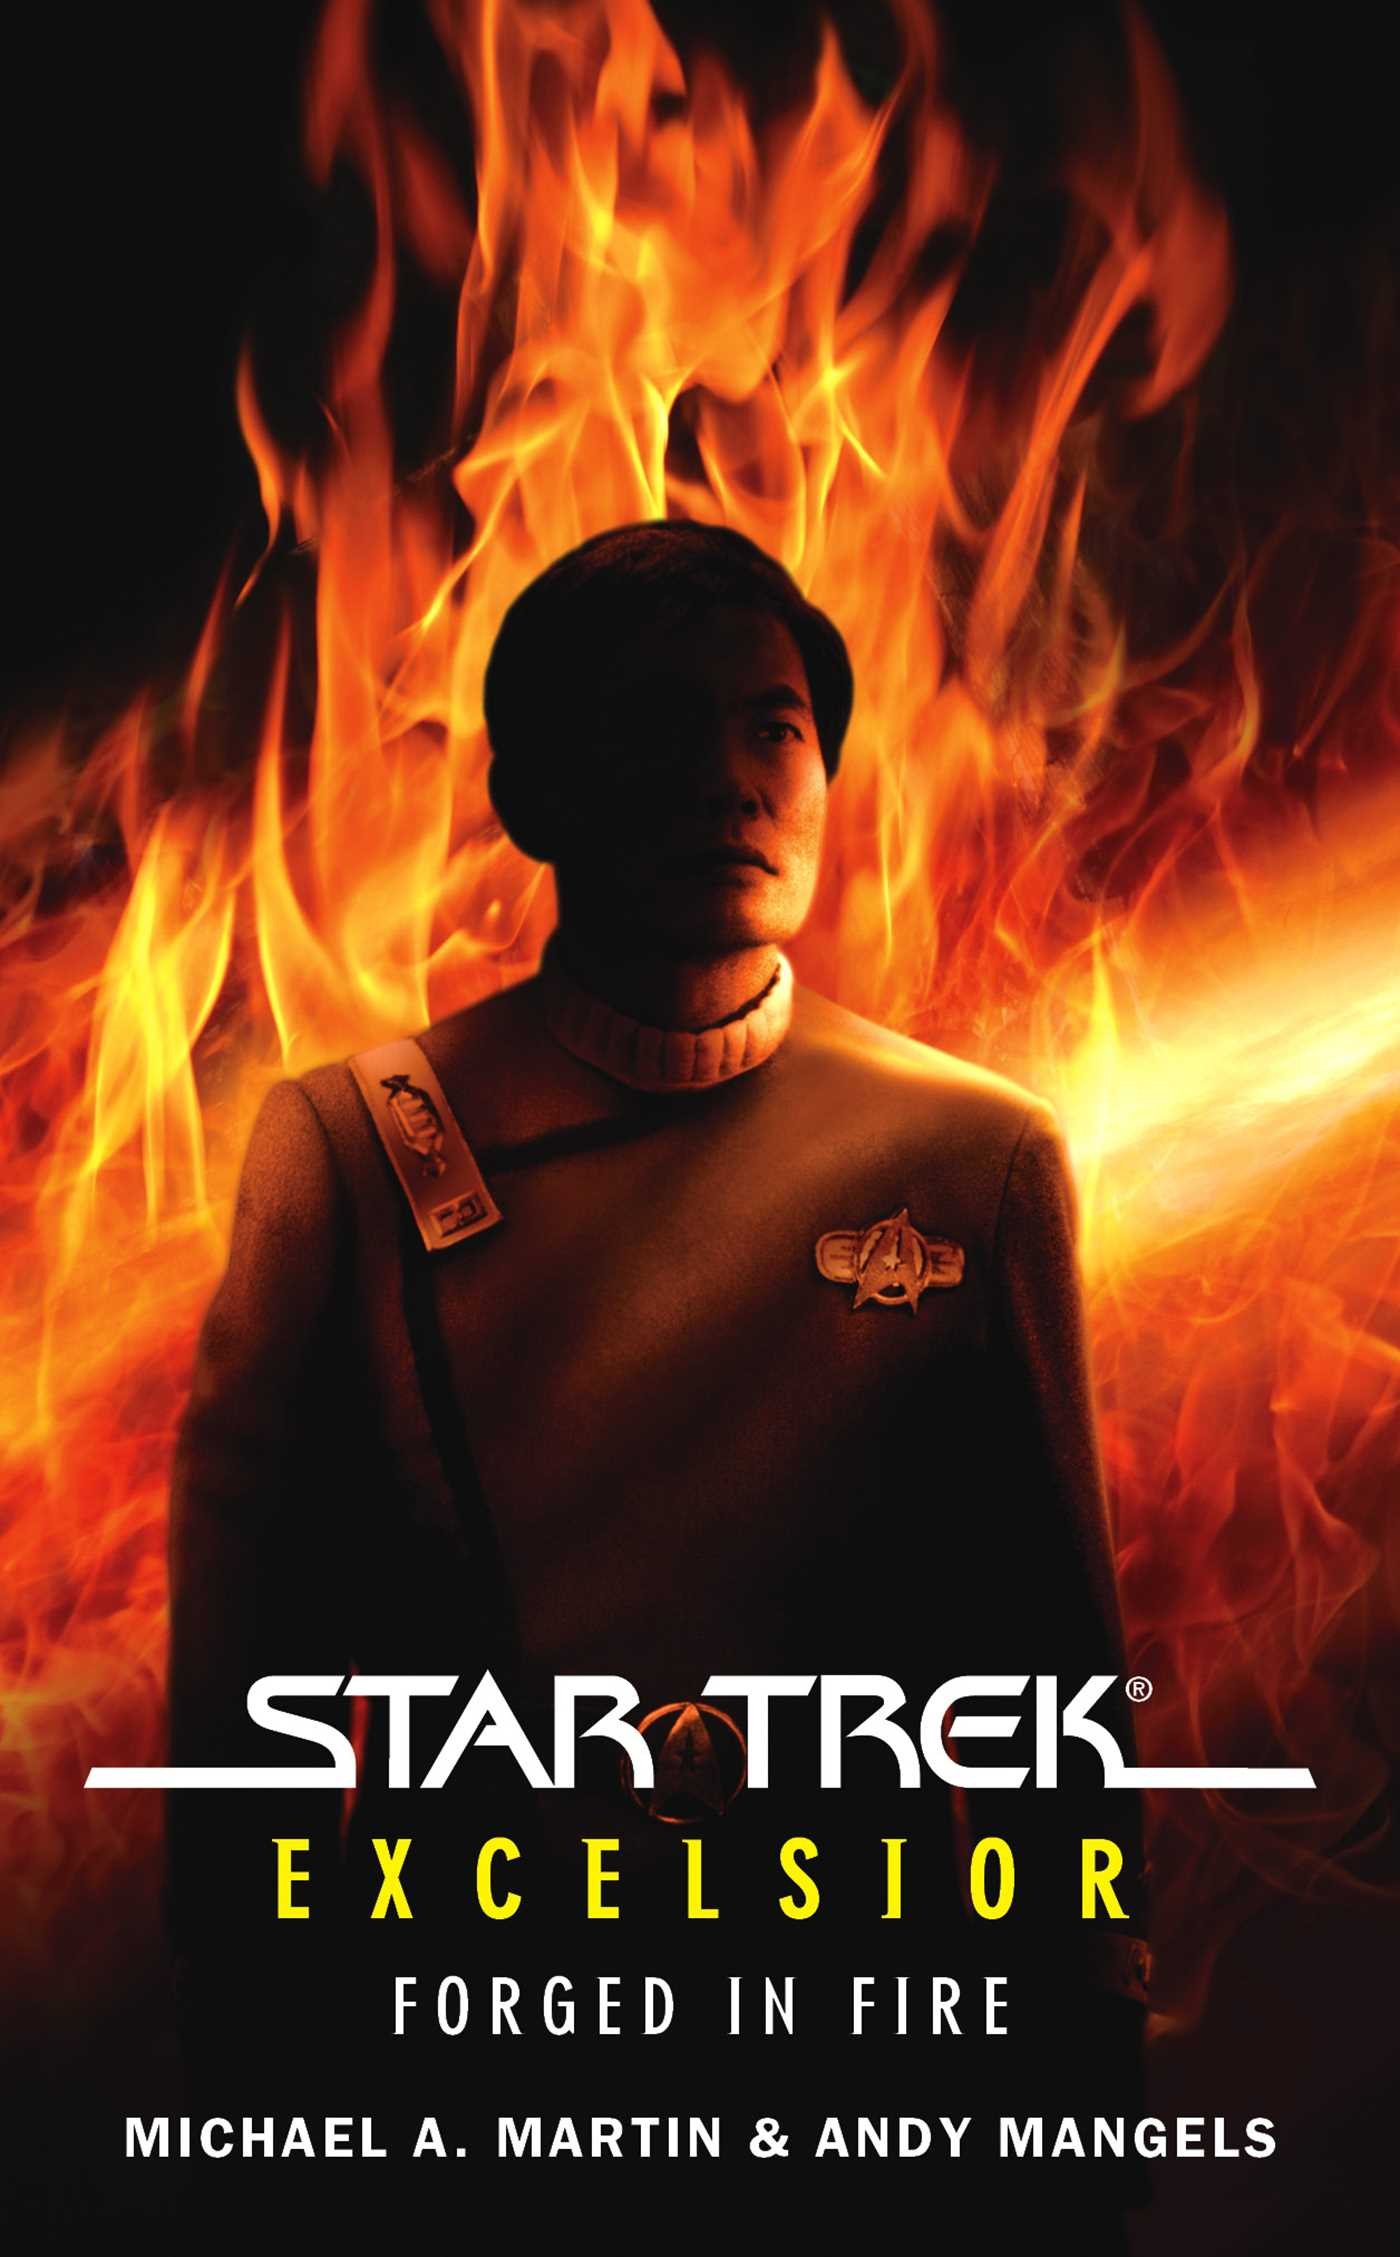 star trek the original series excelsior forged in fire ebook by